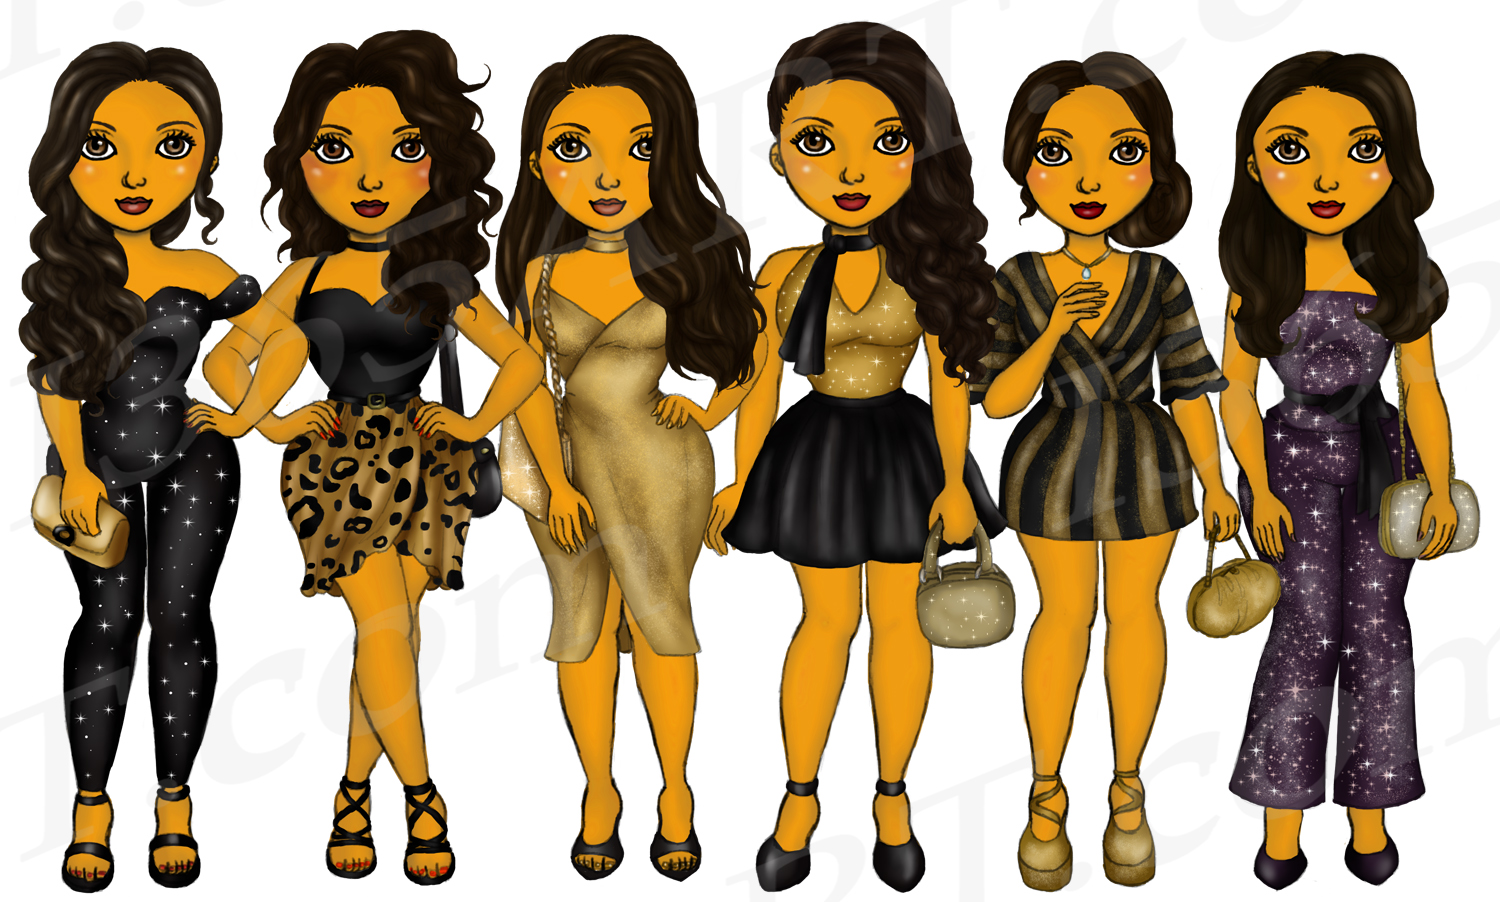 New Years Eve Party Brown Skin Tan Girls Fashion Clipart example image 2